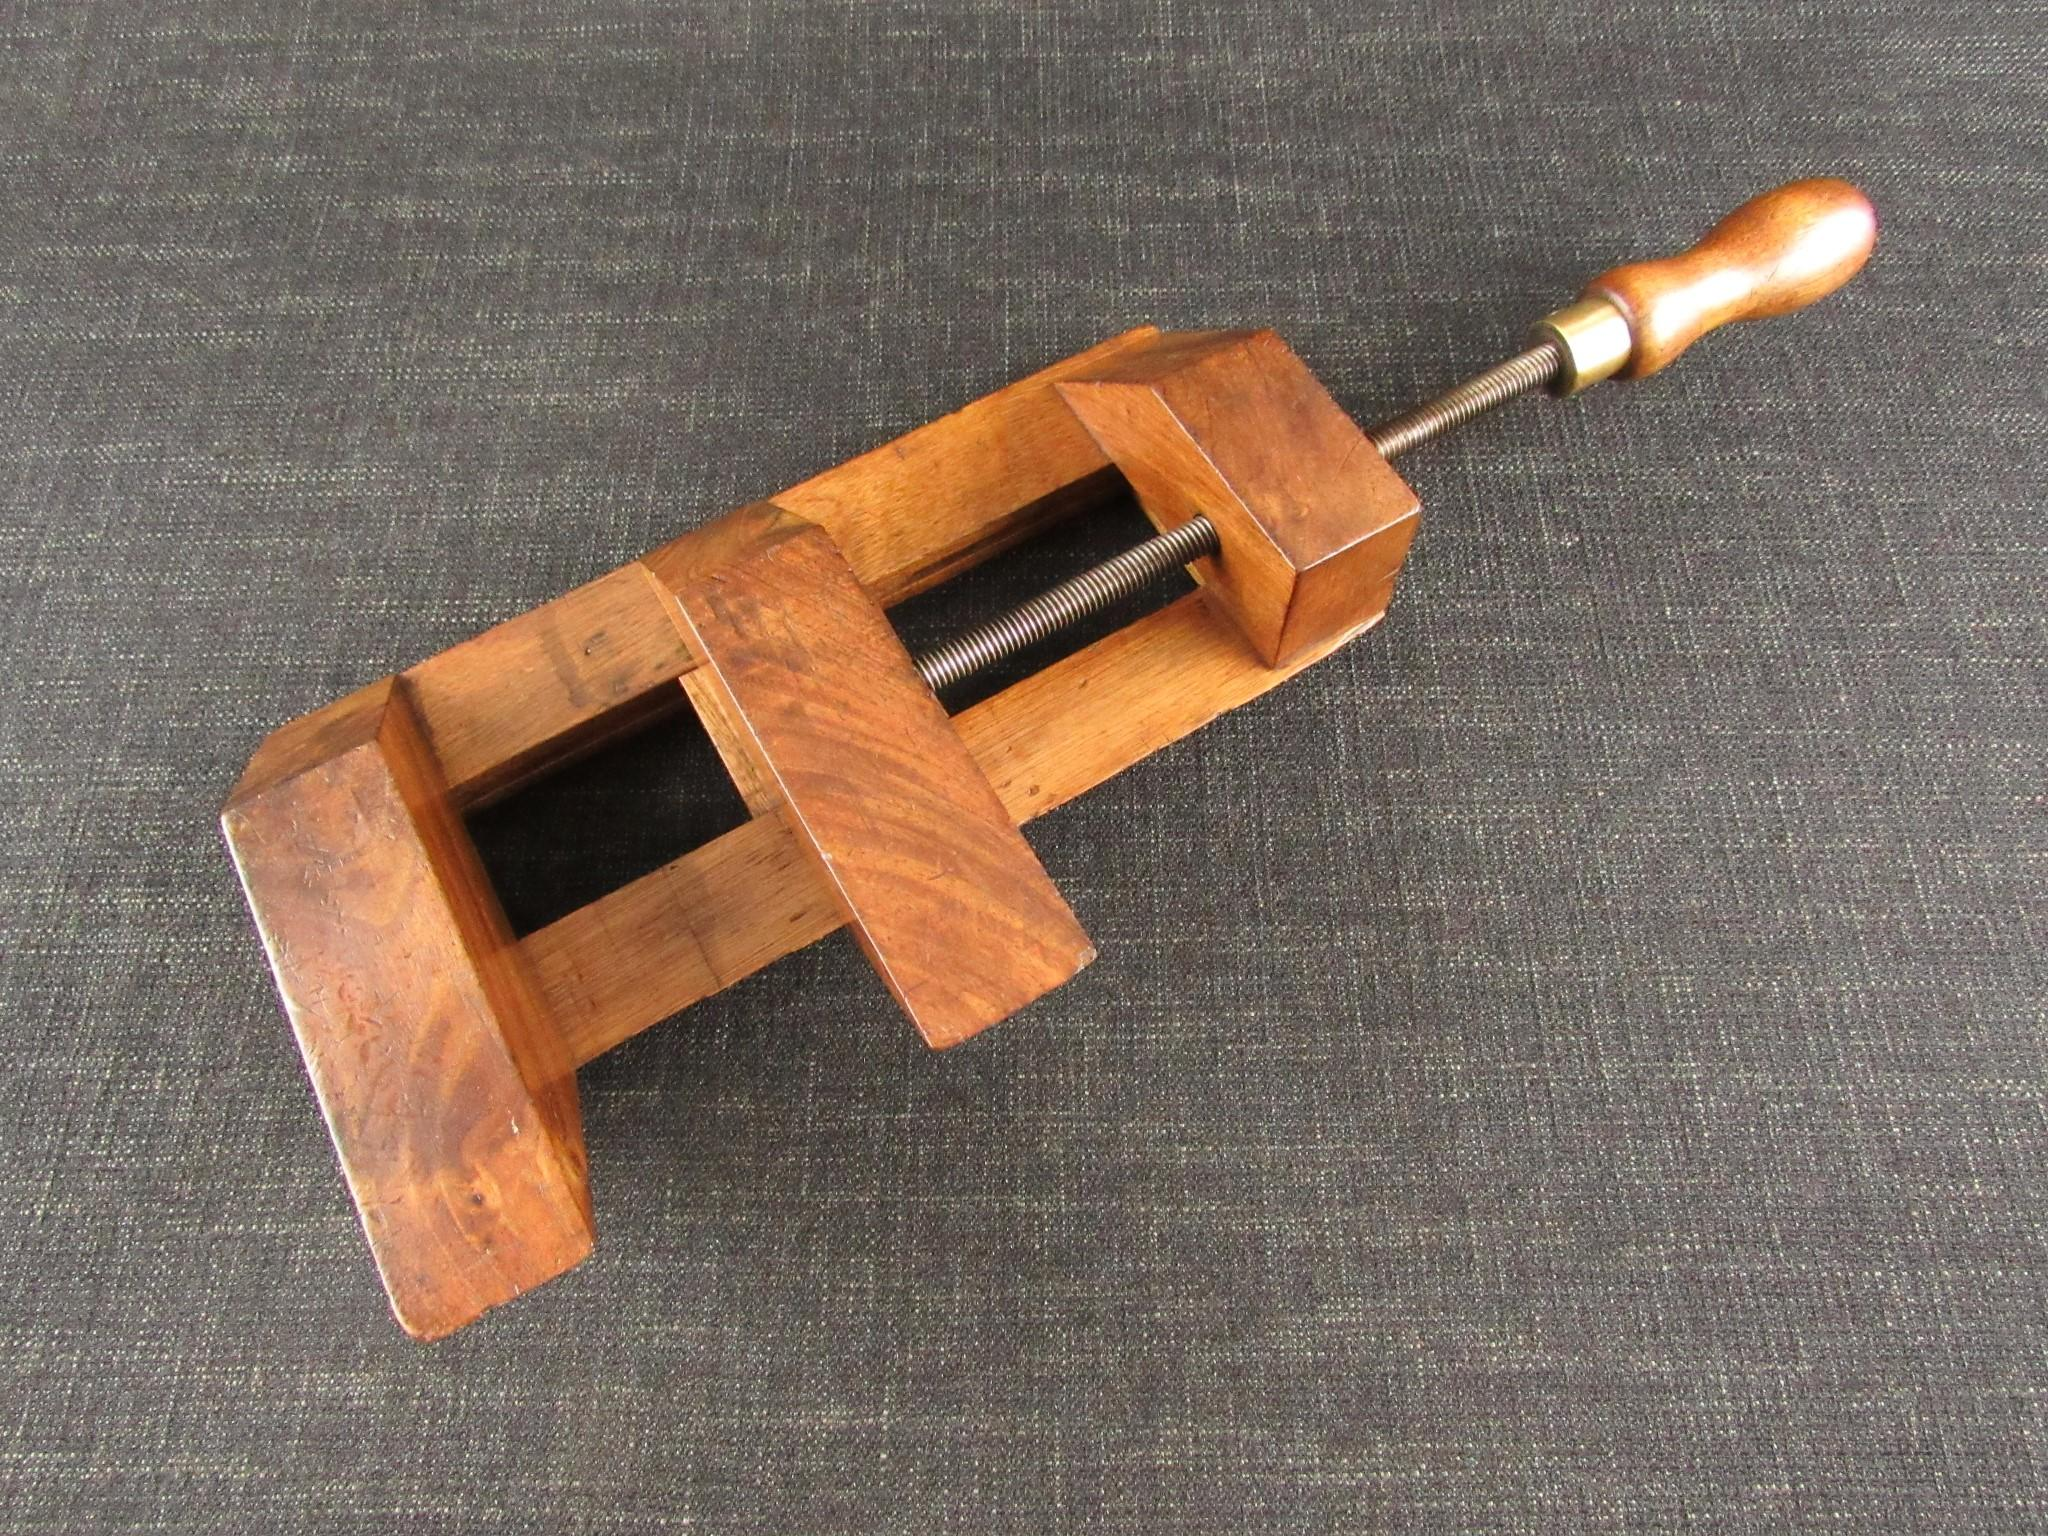 Wooden Mitre Chops - Mitre Shooting Block